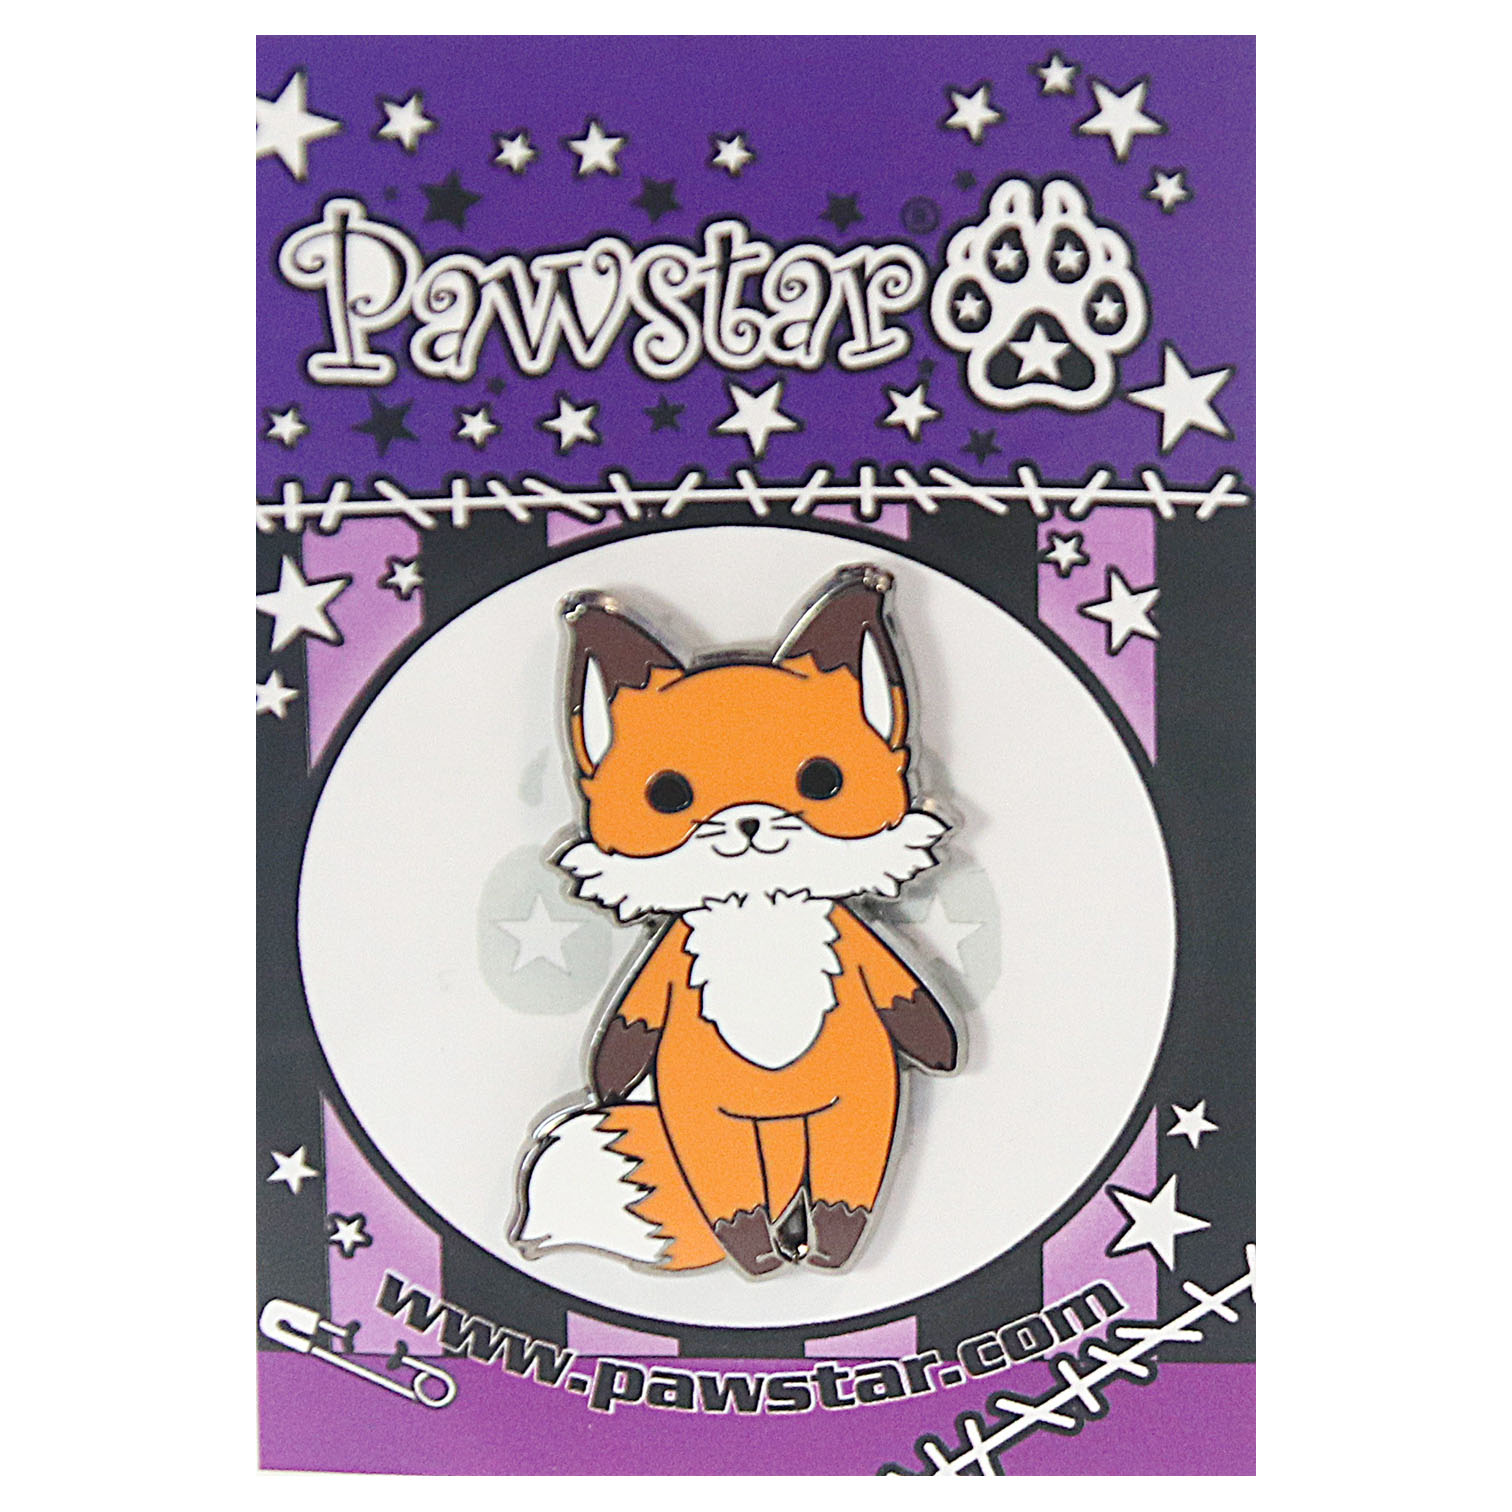 Pawstar Collector's Pin - Chuffins™ The Happy Fox